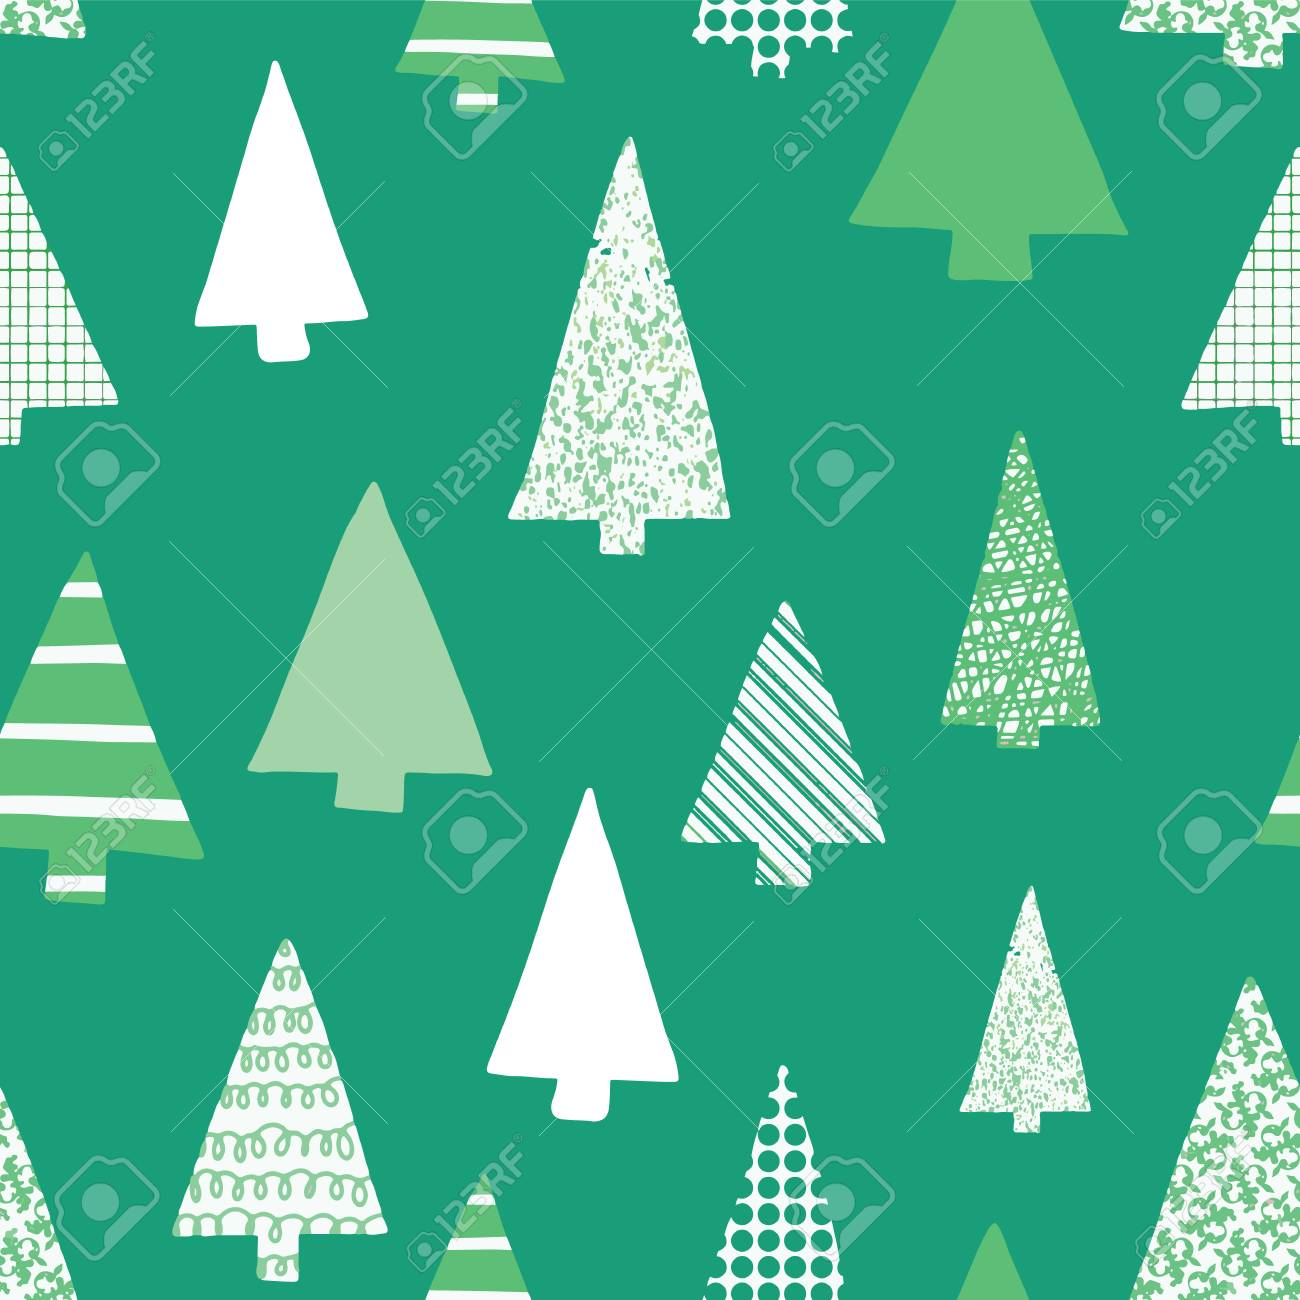 Christmas Trees Silhouette.Abstract Christmas Trees Vector Seamless Pattern Christmas Tree